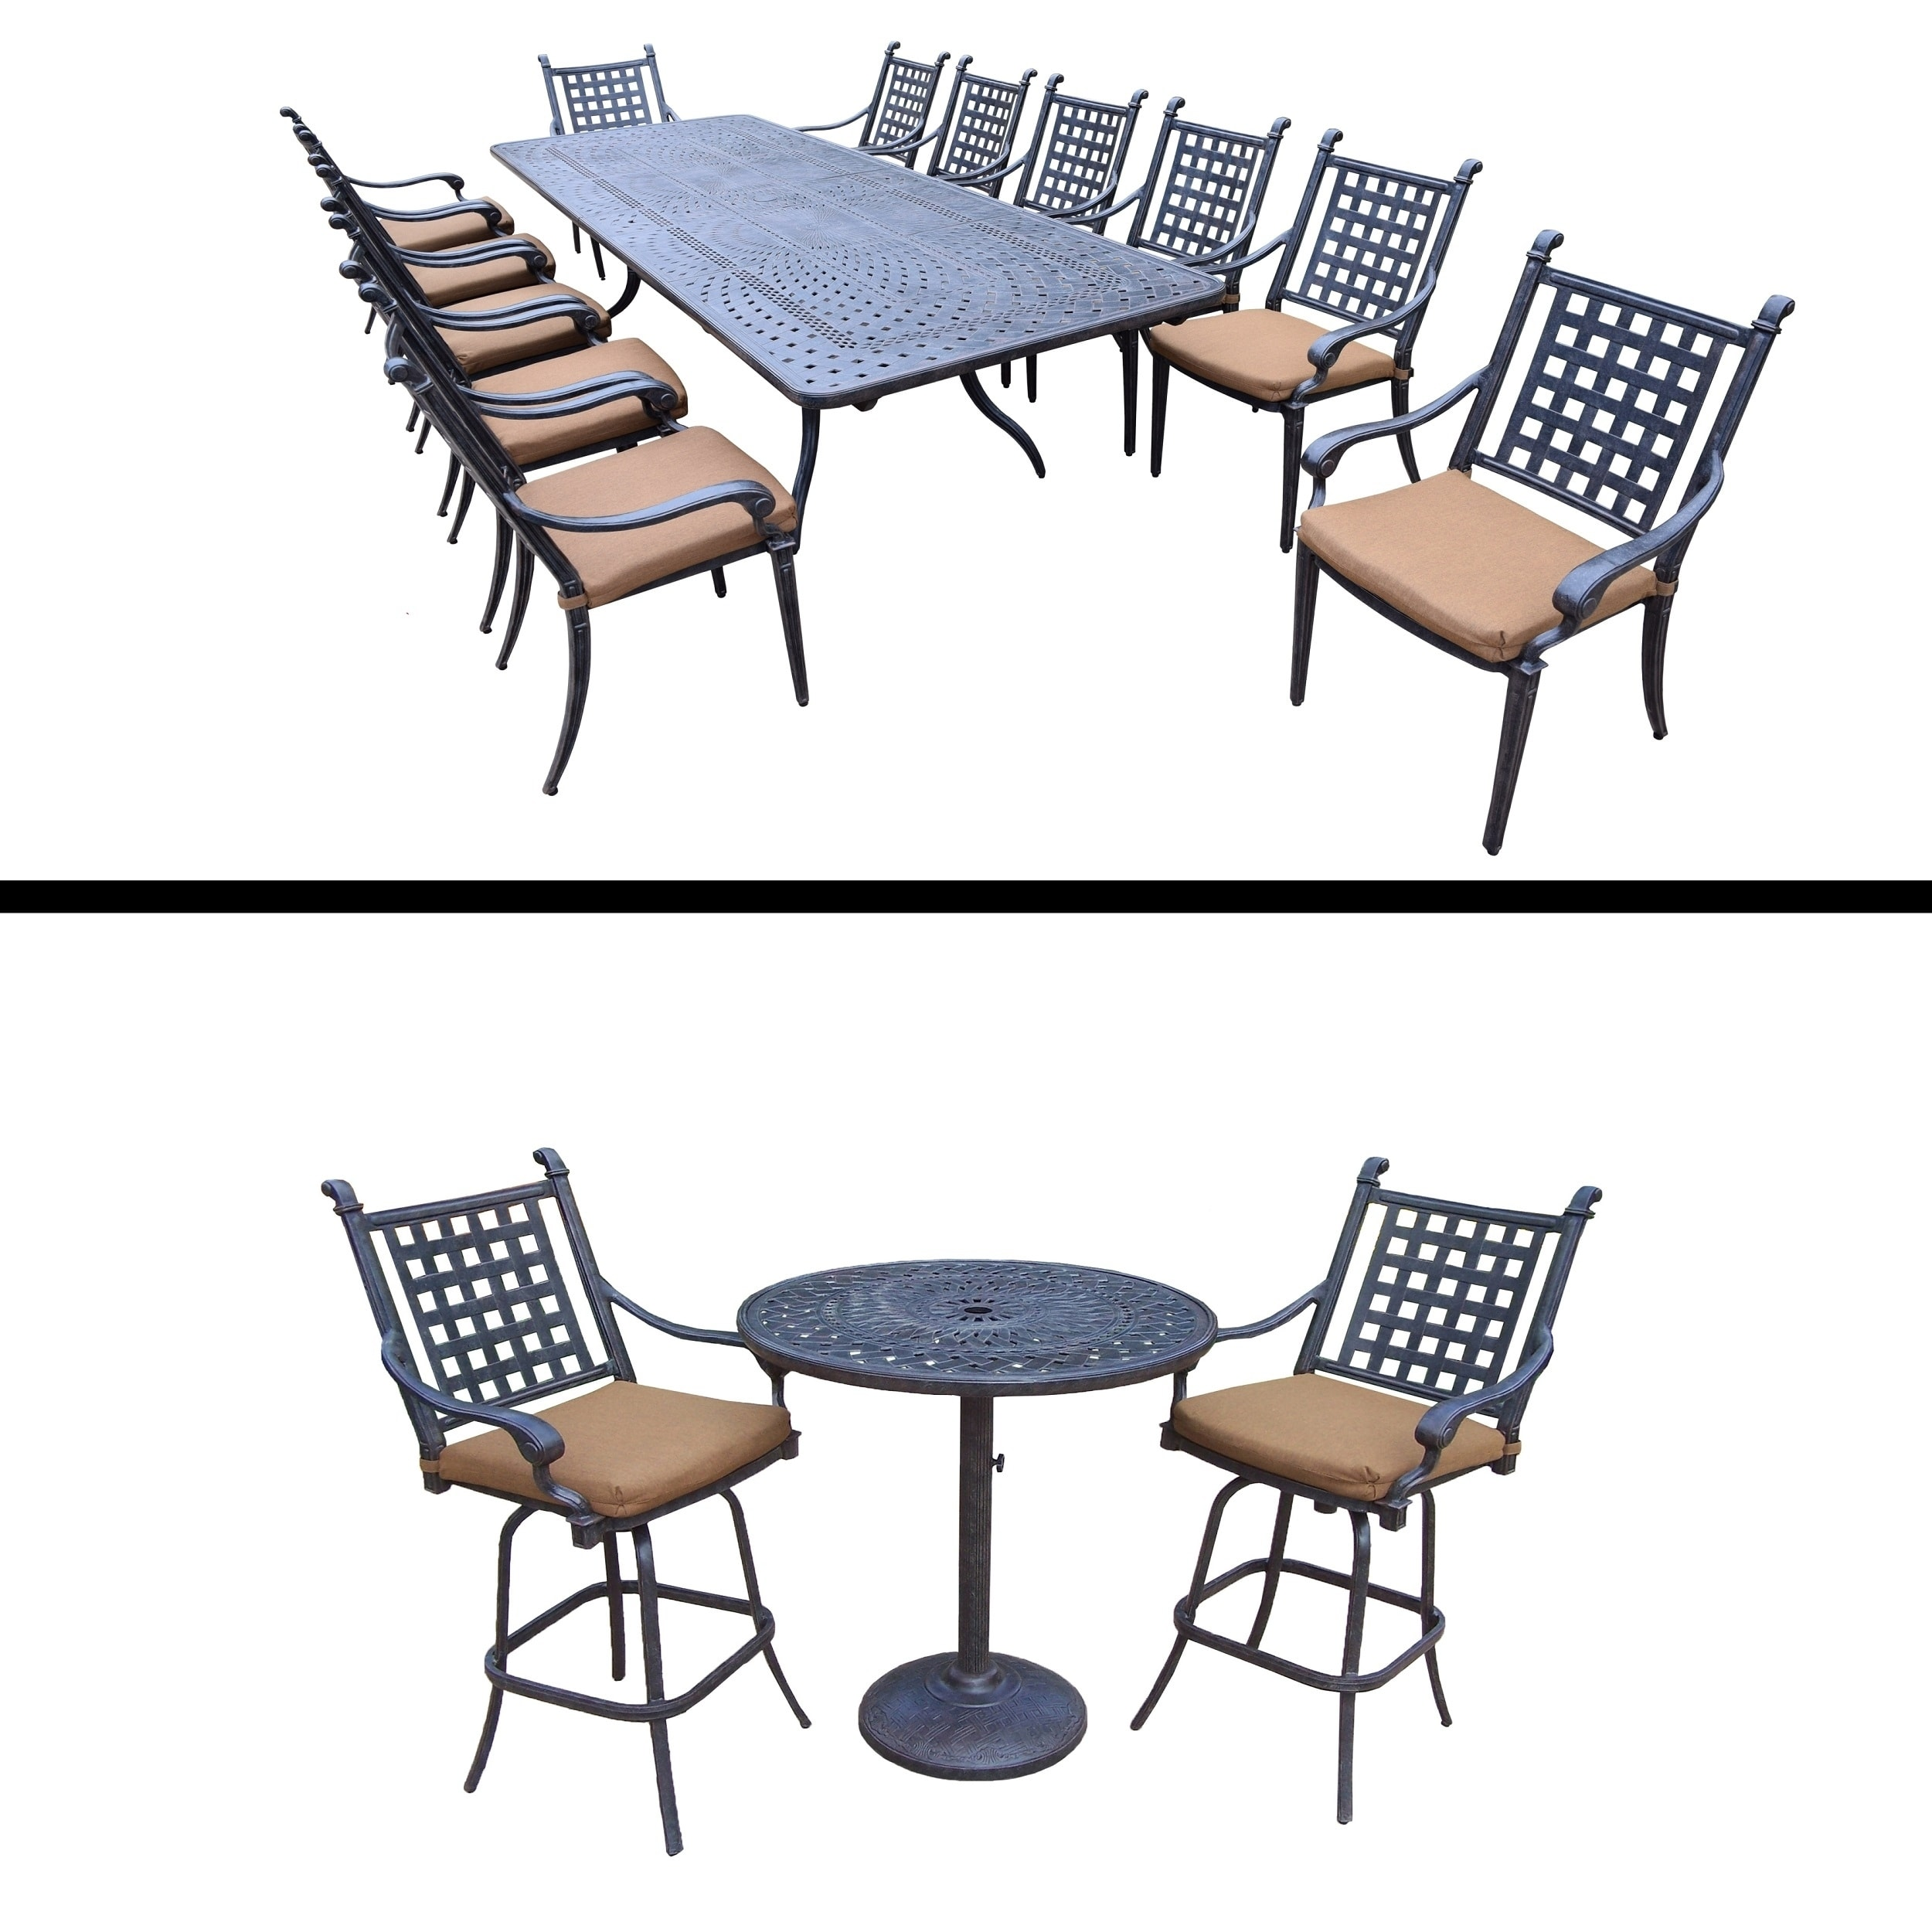 Oakland Living 13 Pc Dining Room Set with Extendable Table and 3 Pc Bar Set and Cushions by Overstock